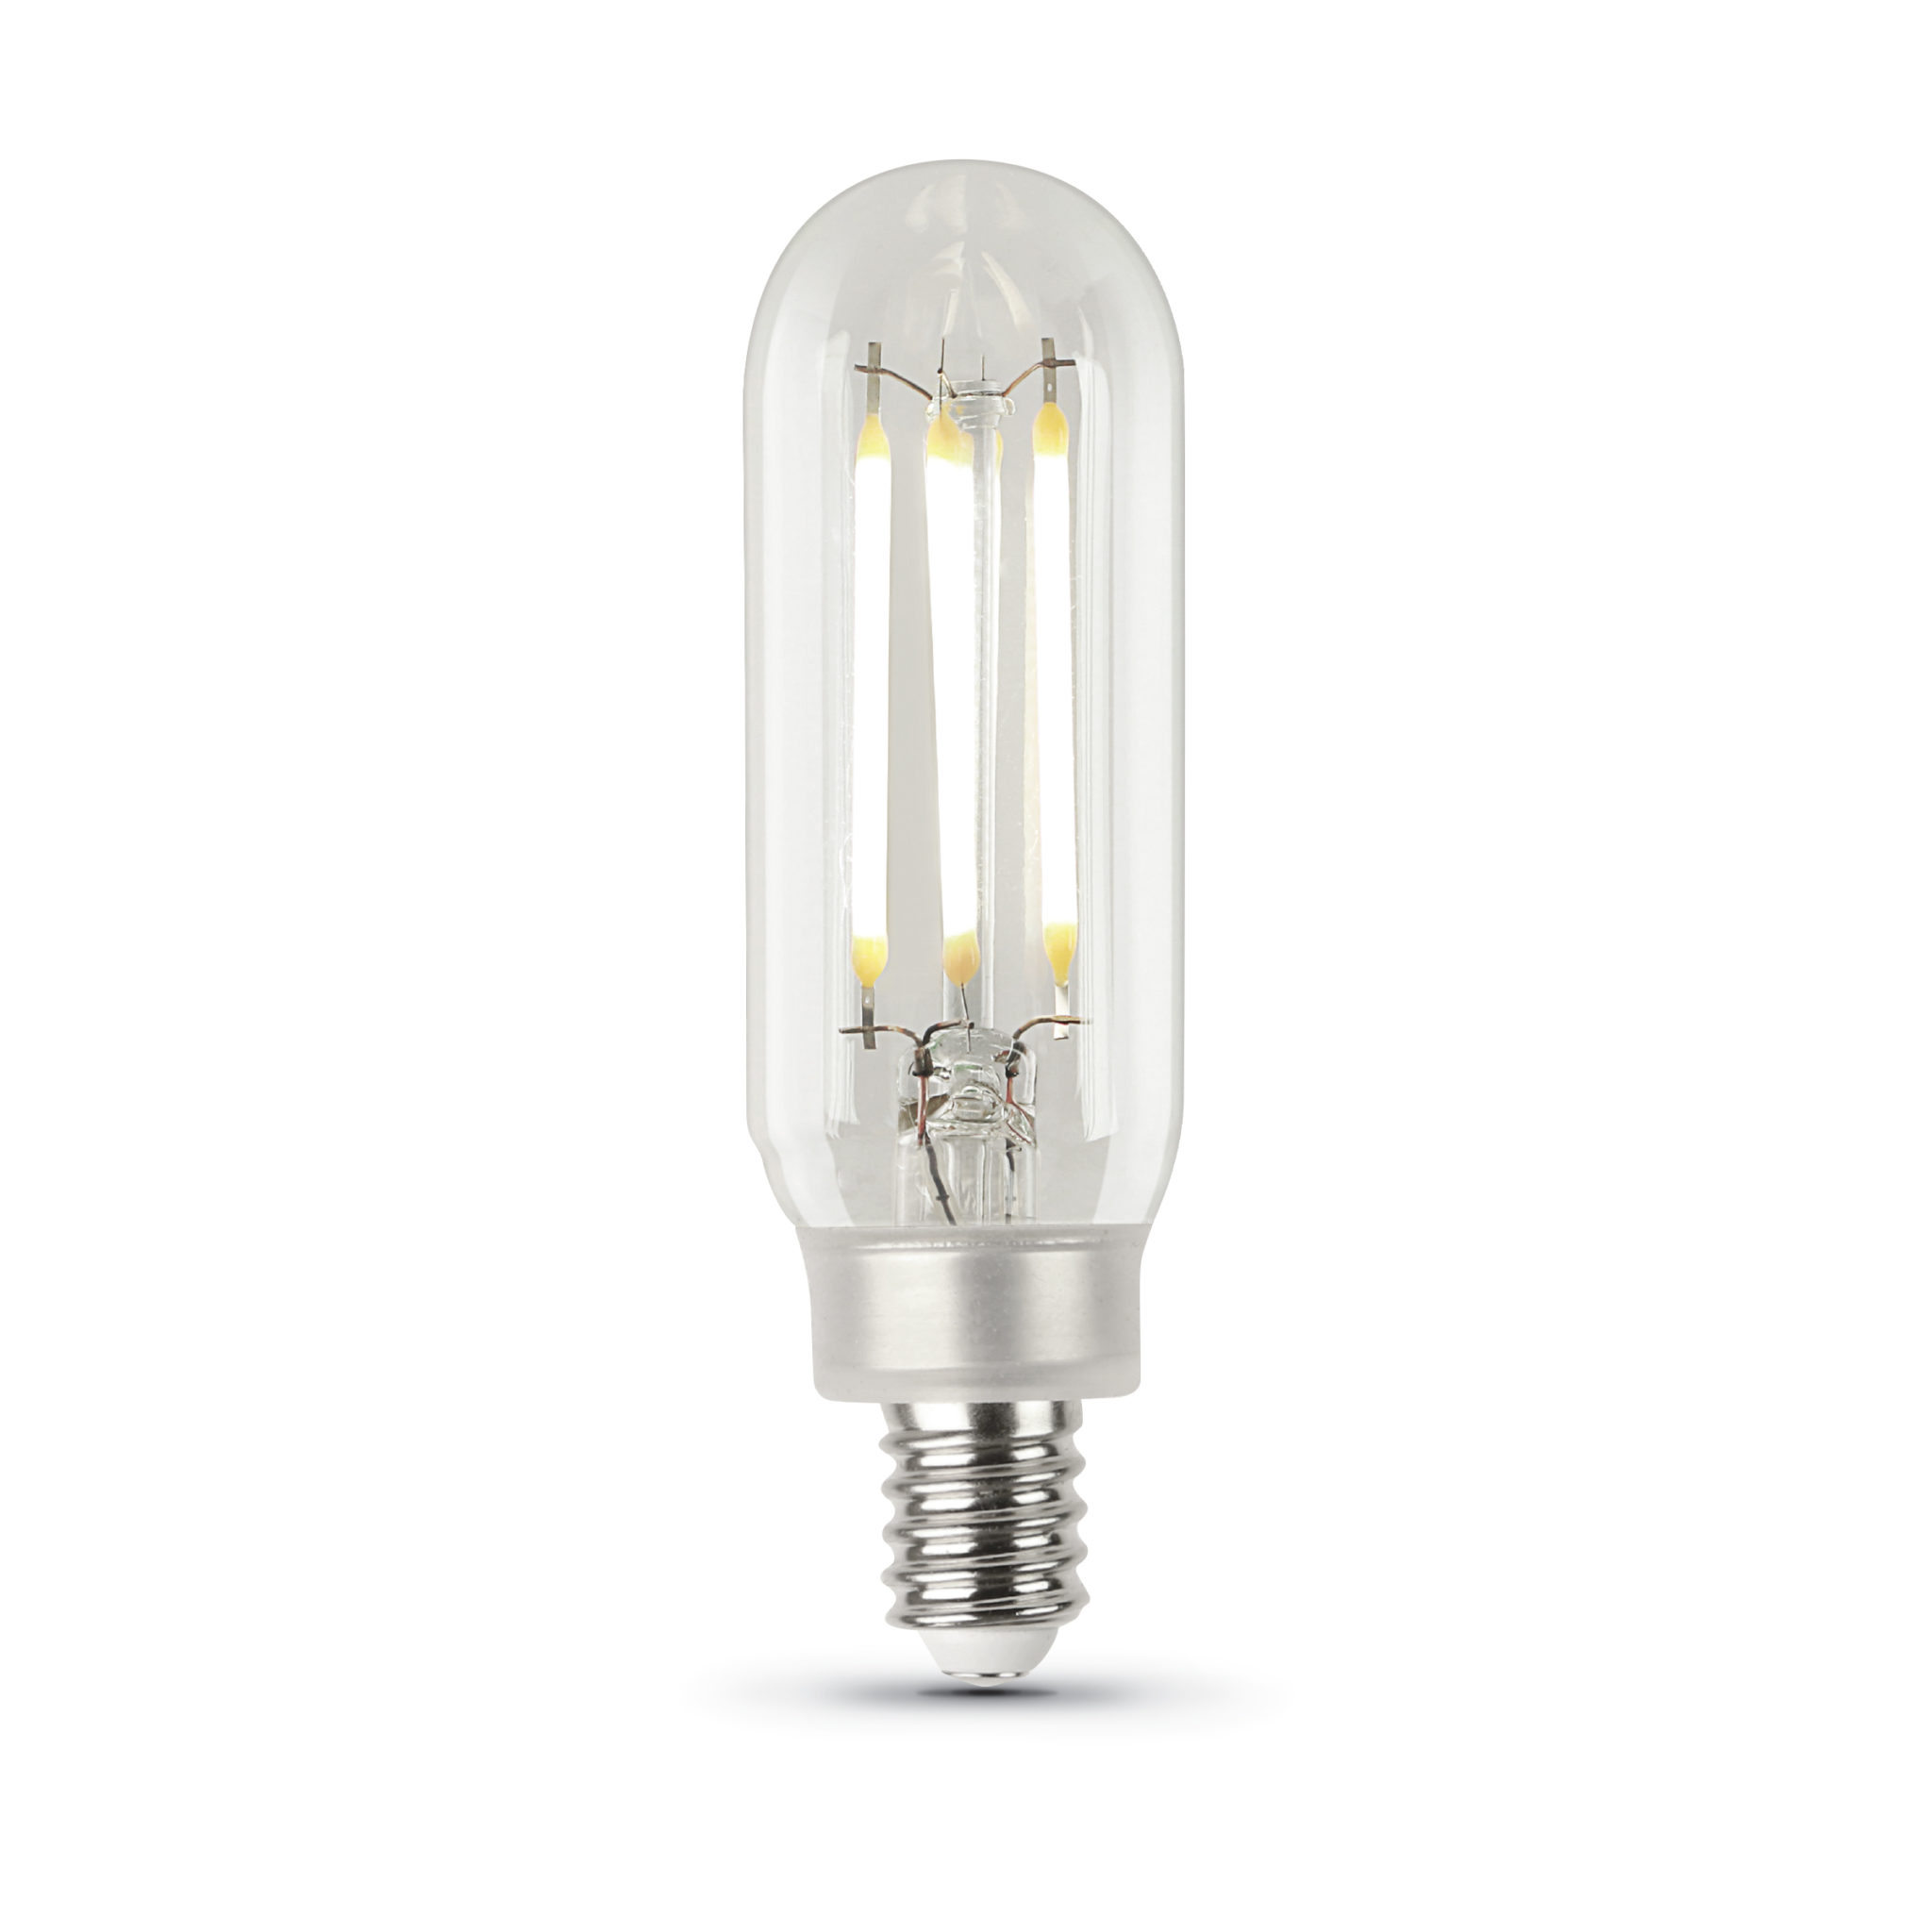 40 W Equivalent Soft White T8 Original Vintage LED Light Bulb - Feit Electric